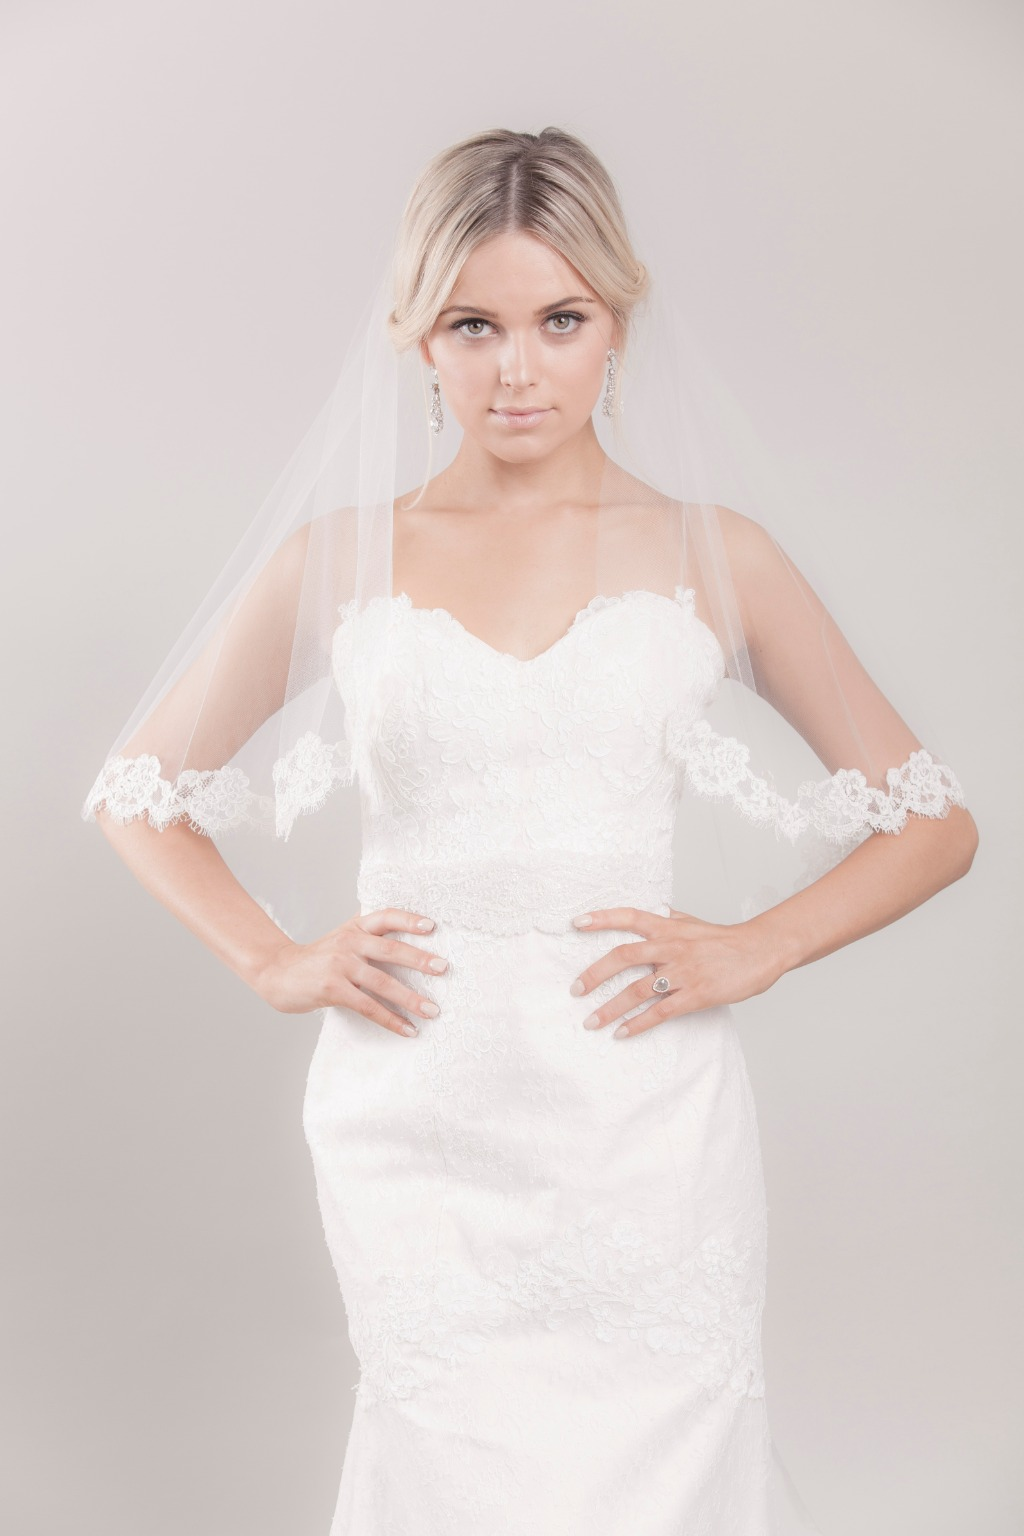 Sheer light cascade cut fingertip veil with lace framed border starting at the elbow. Click to learn more details!